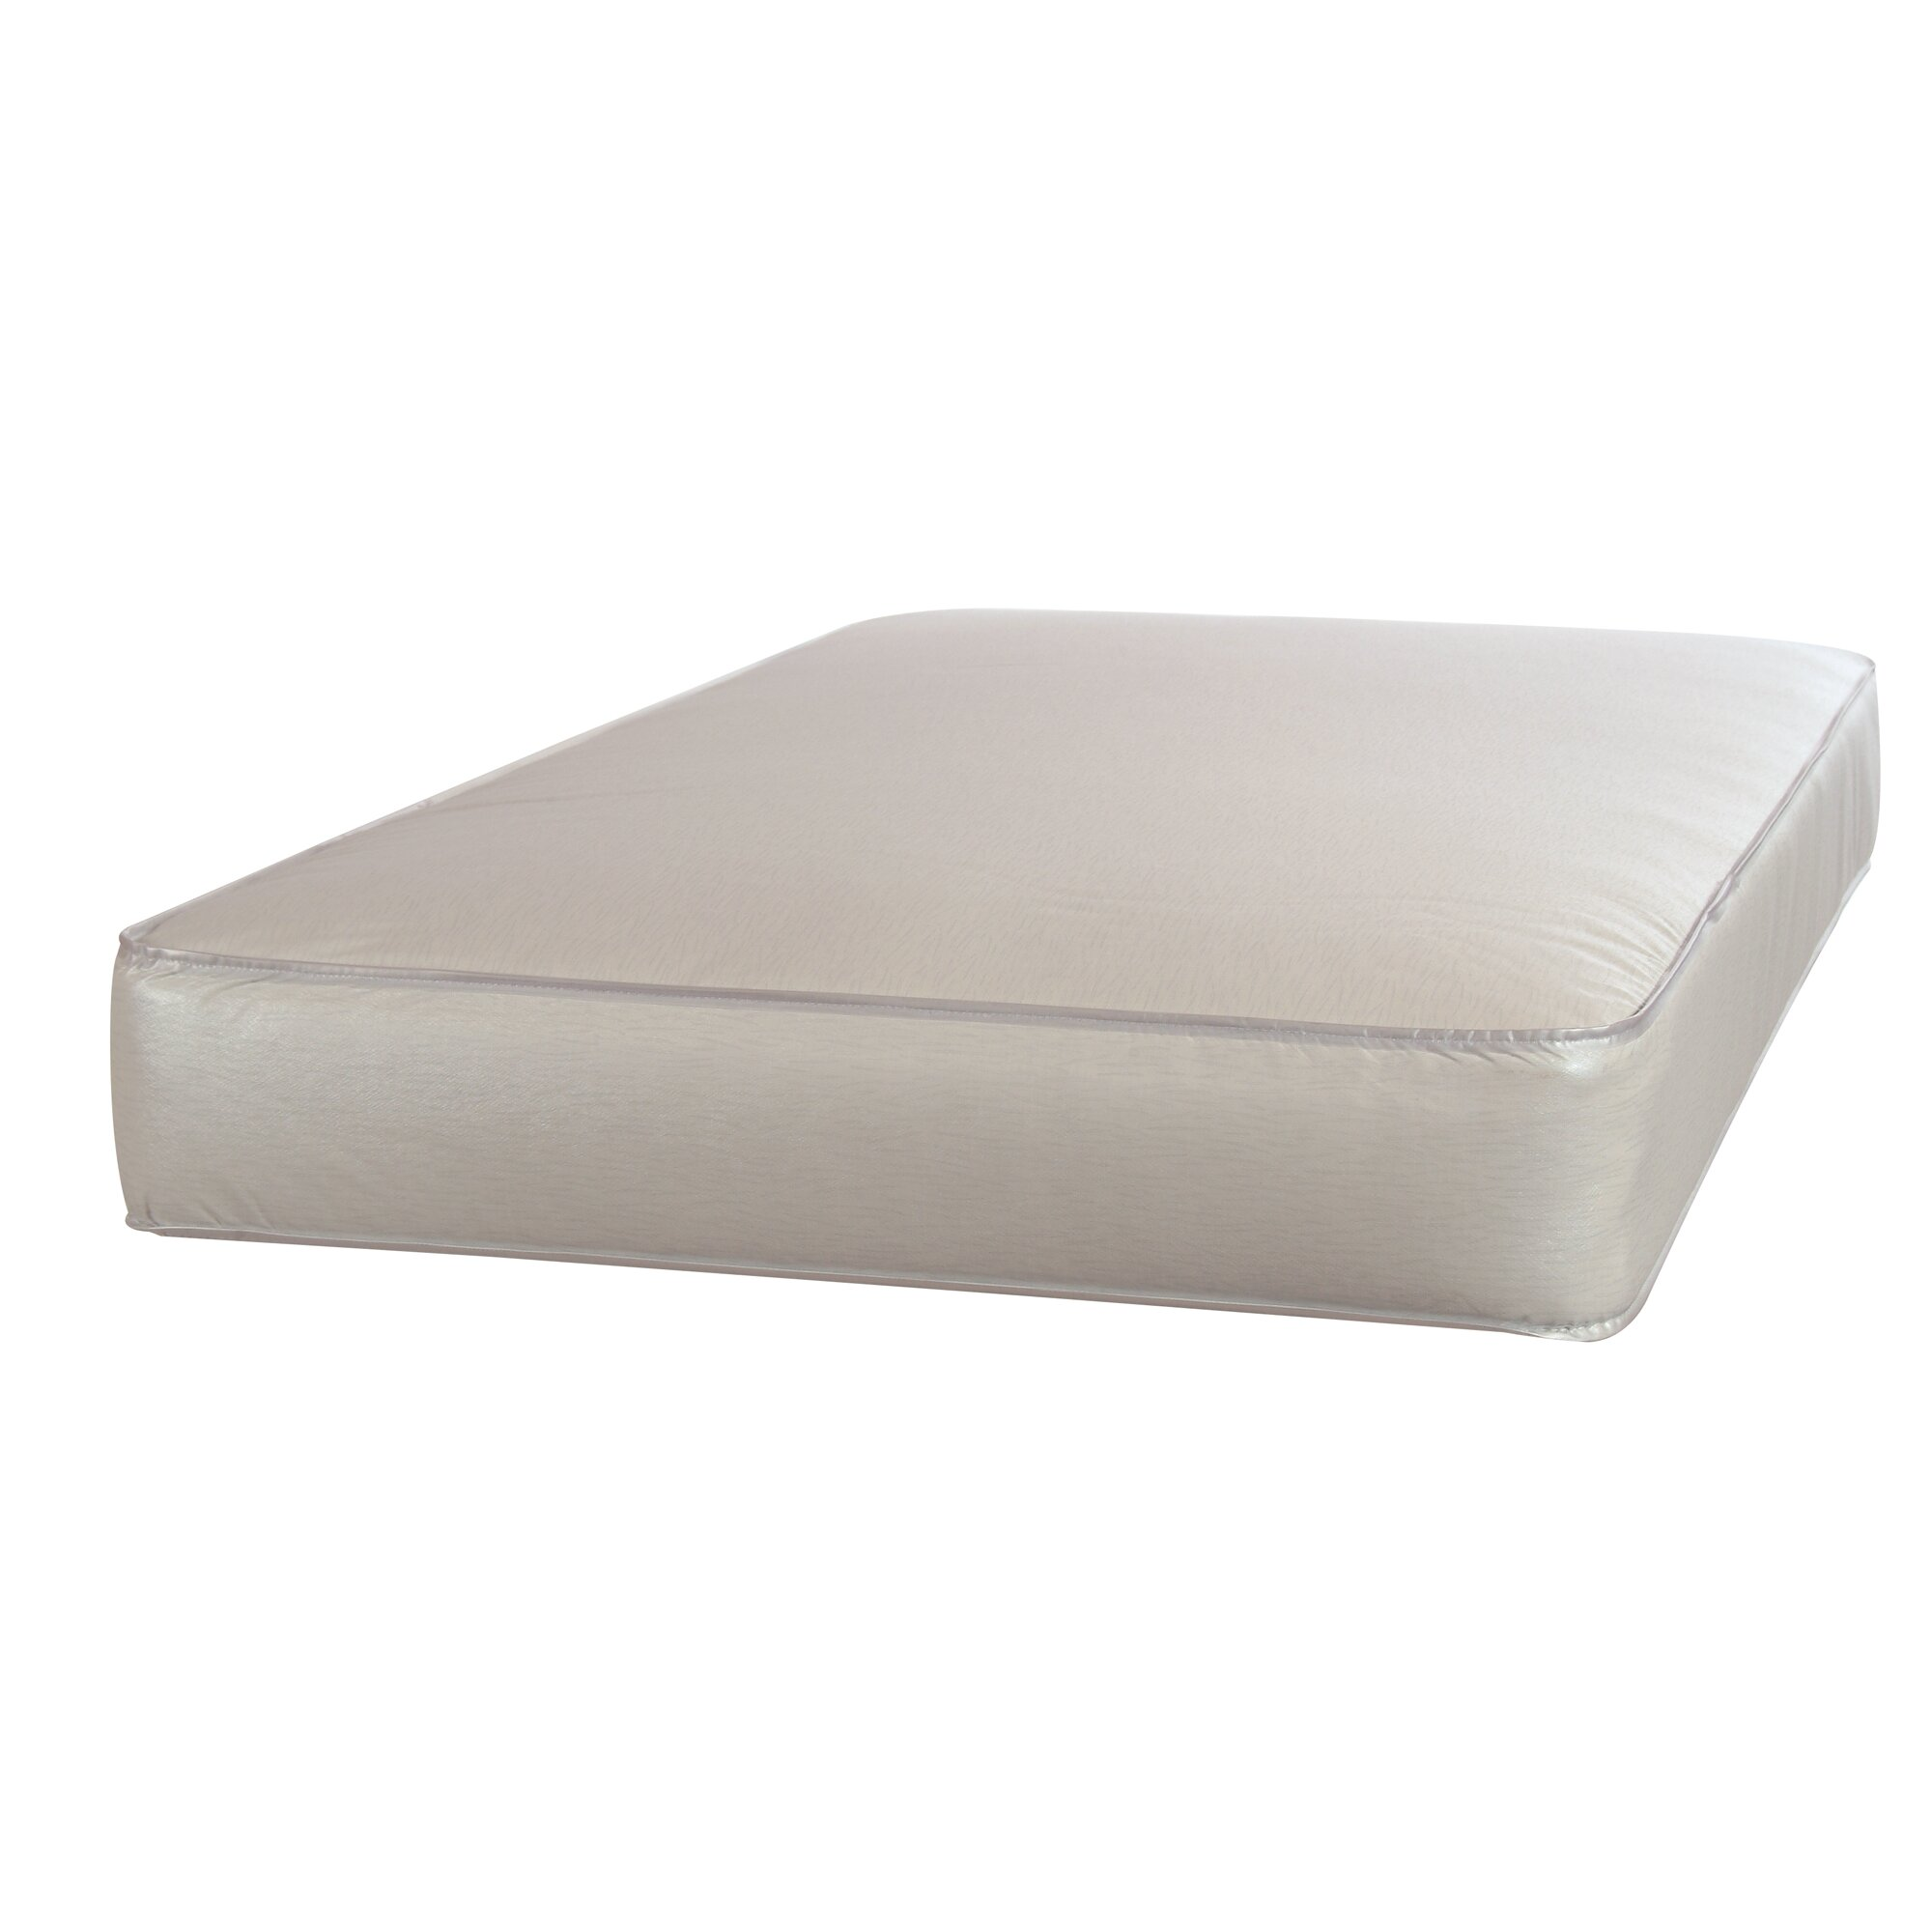 Crib for sale louisville ky - Perfect Rest 5 25 Crib Toddler Bed Mattress